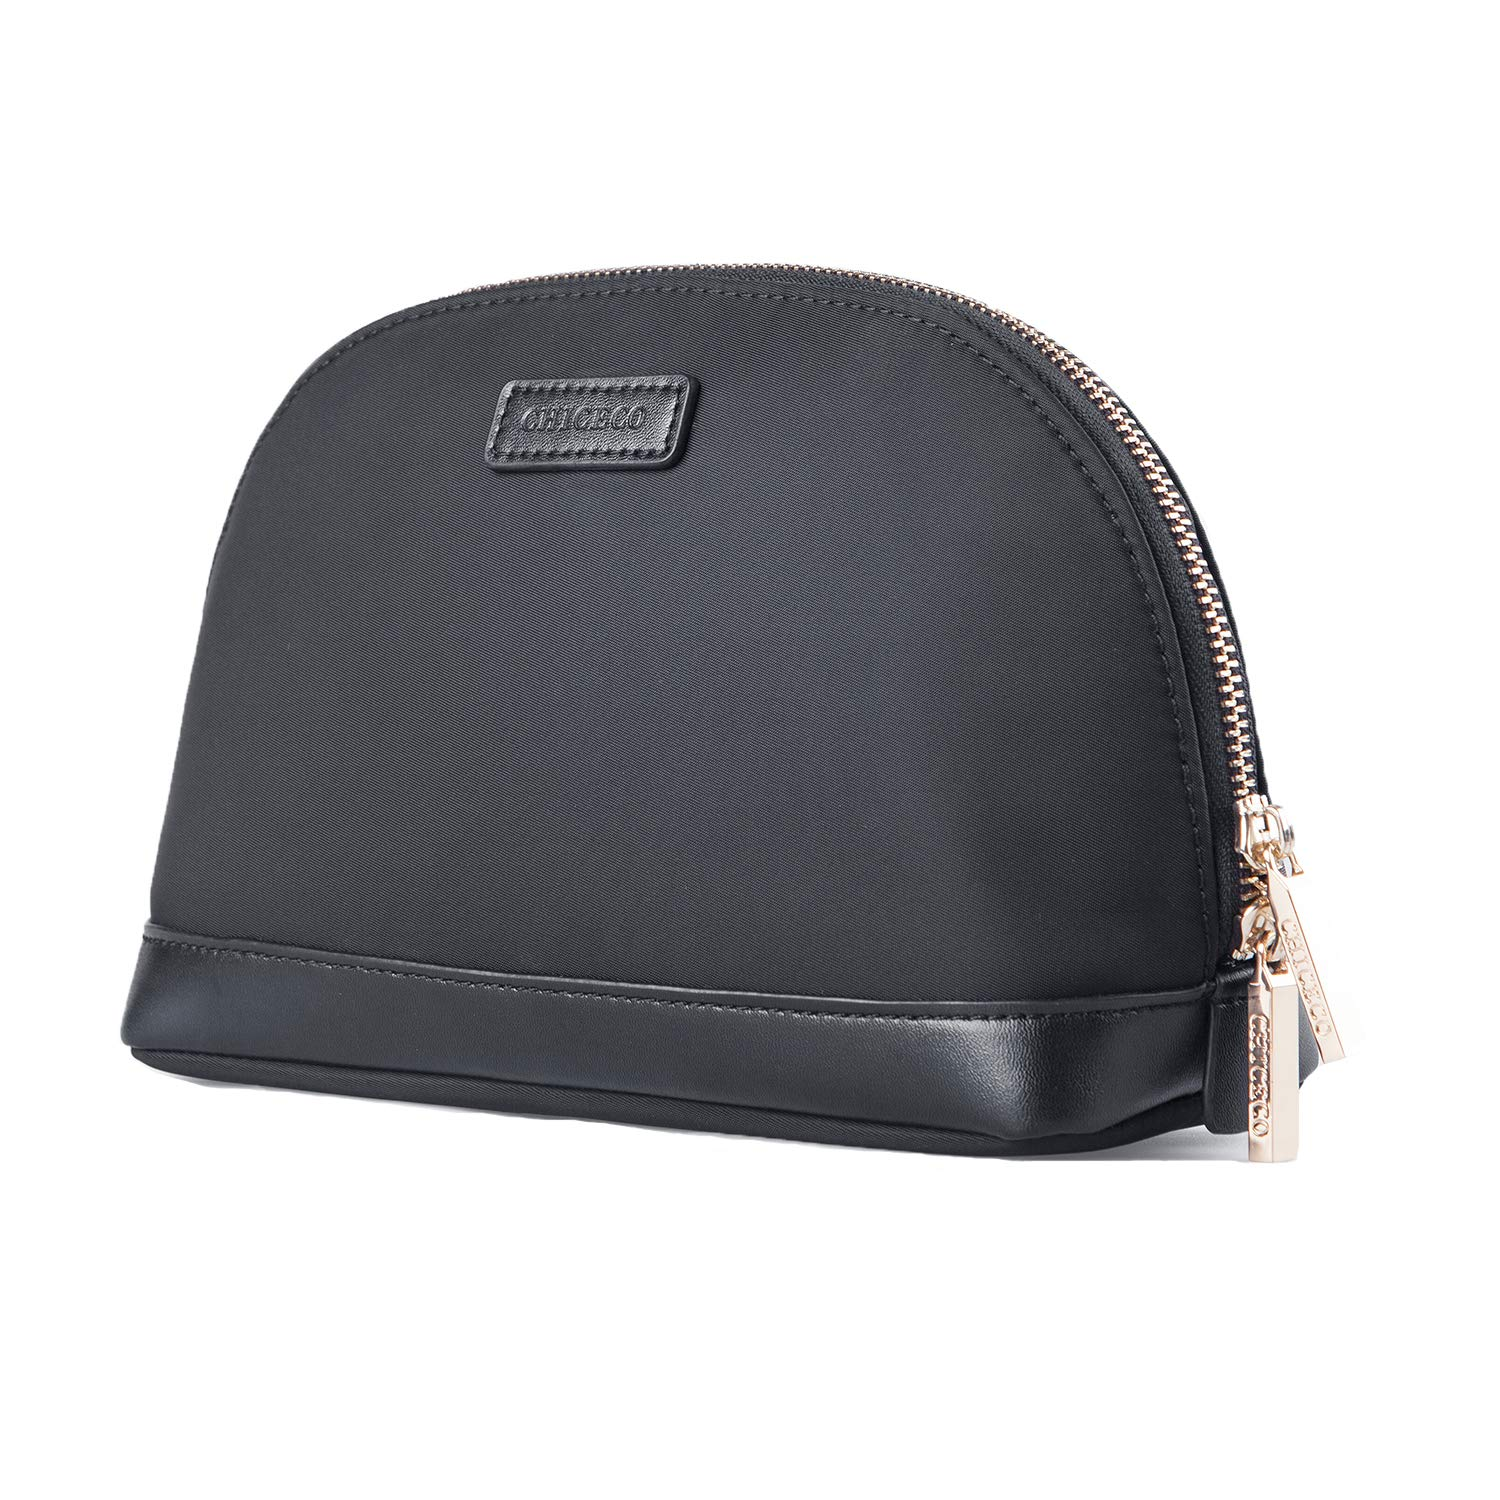 CHICECO Large Makeup Bag Toiletry Bag for Women Skincare Cosmetic Pouch (Black2 / Medium-Large)